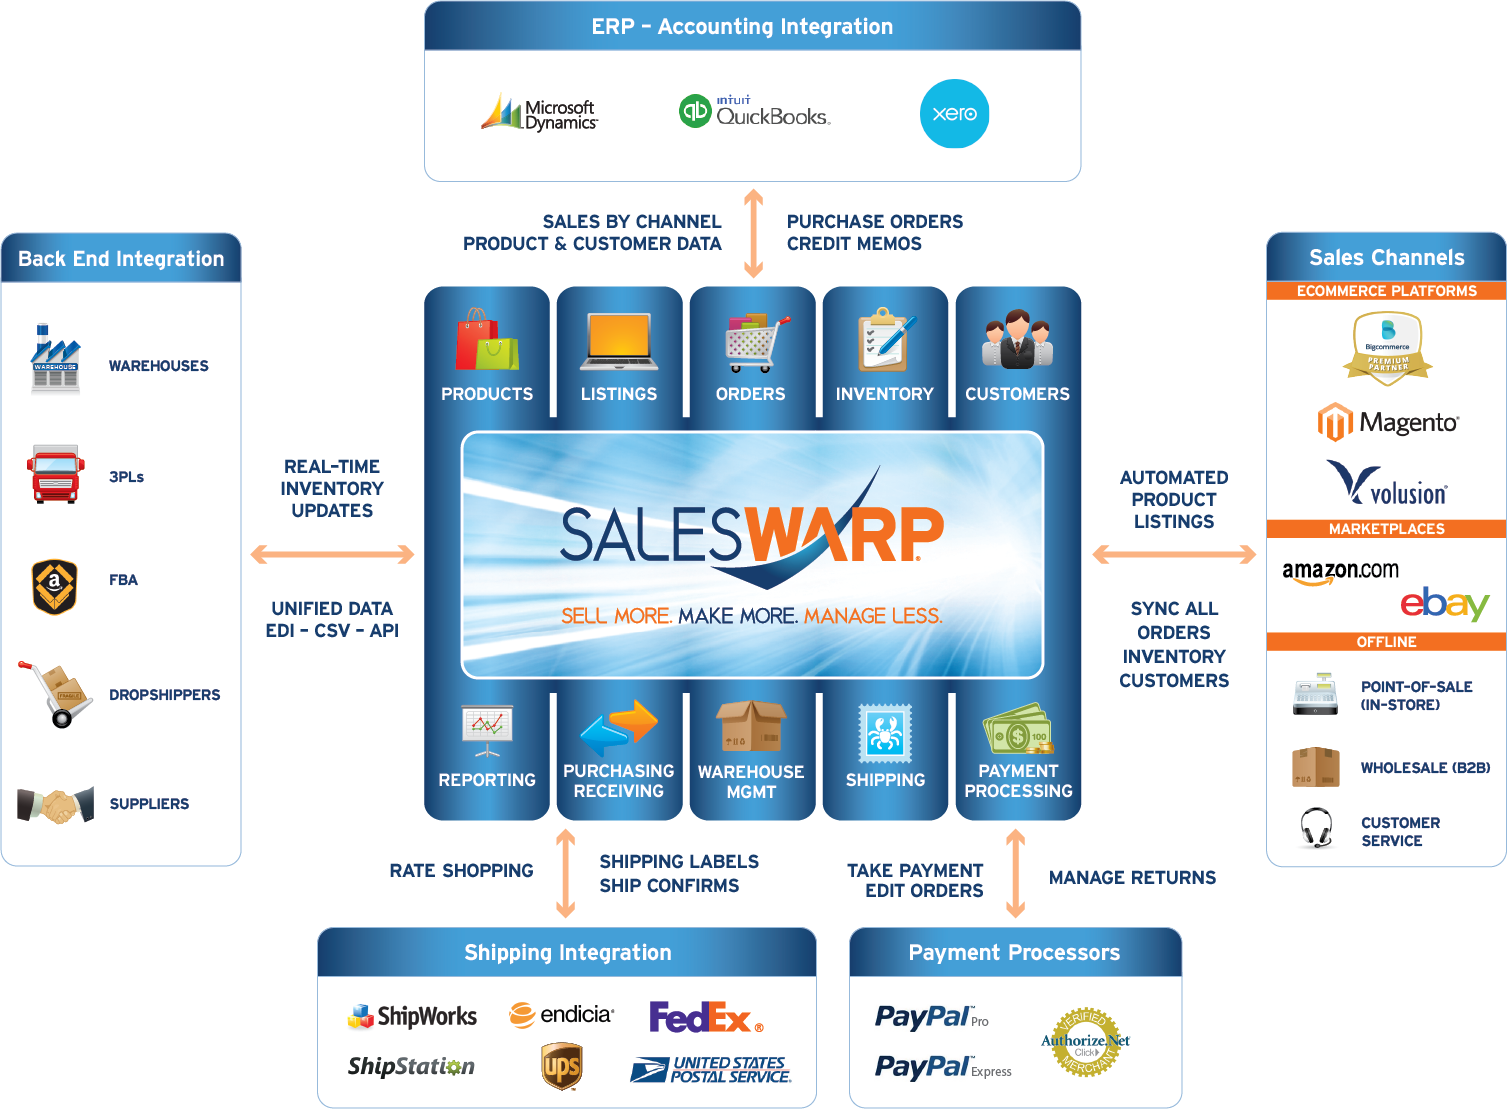 SalesWarp Omnichannel eCommerce Management Software eCosystem: Sell More. Make More. Manage Less. Features: Product Management(PIM), Product Listing, Order Management System (OMS), Inventory Management, Customer Management, Reporting & Analytics, Supplier Management, Purchasing & Receiving, Fulfillment, Warehouse Management System (WMS), Payment Processing, ERP & Accounting Integration, Shipping Integration, Omnichannel Commerce, Back-end Integration, Multichannel Retail, Big Commerce, Magento, Volusion, eBay, Amazon, POS, B2B, Call Centers